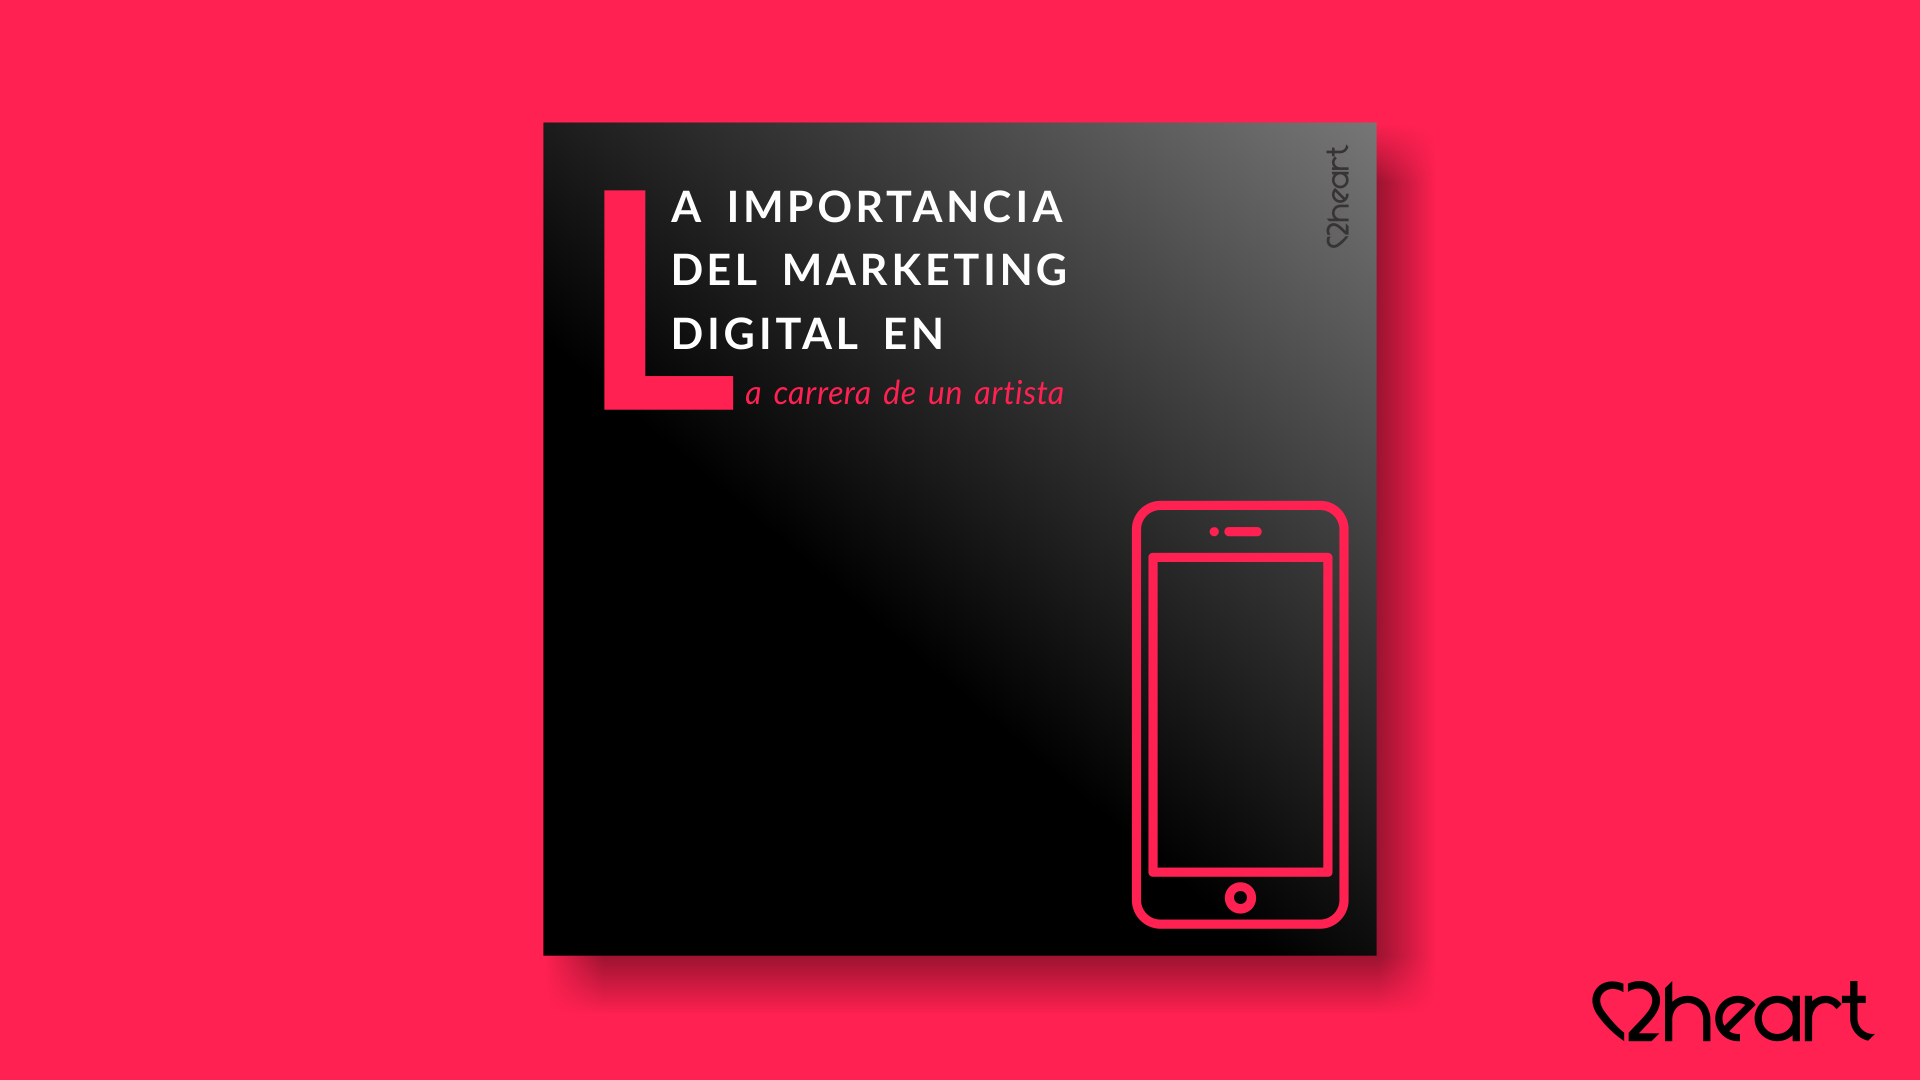 La Importancia Del Marketing Digital En La Carrera De Un Artista